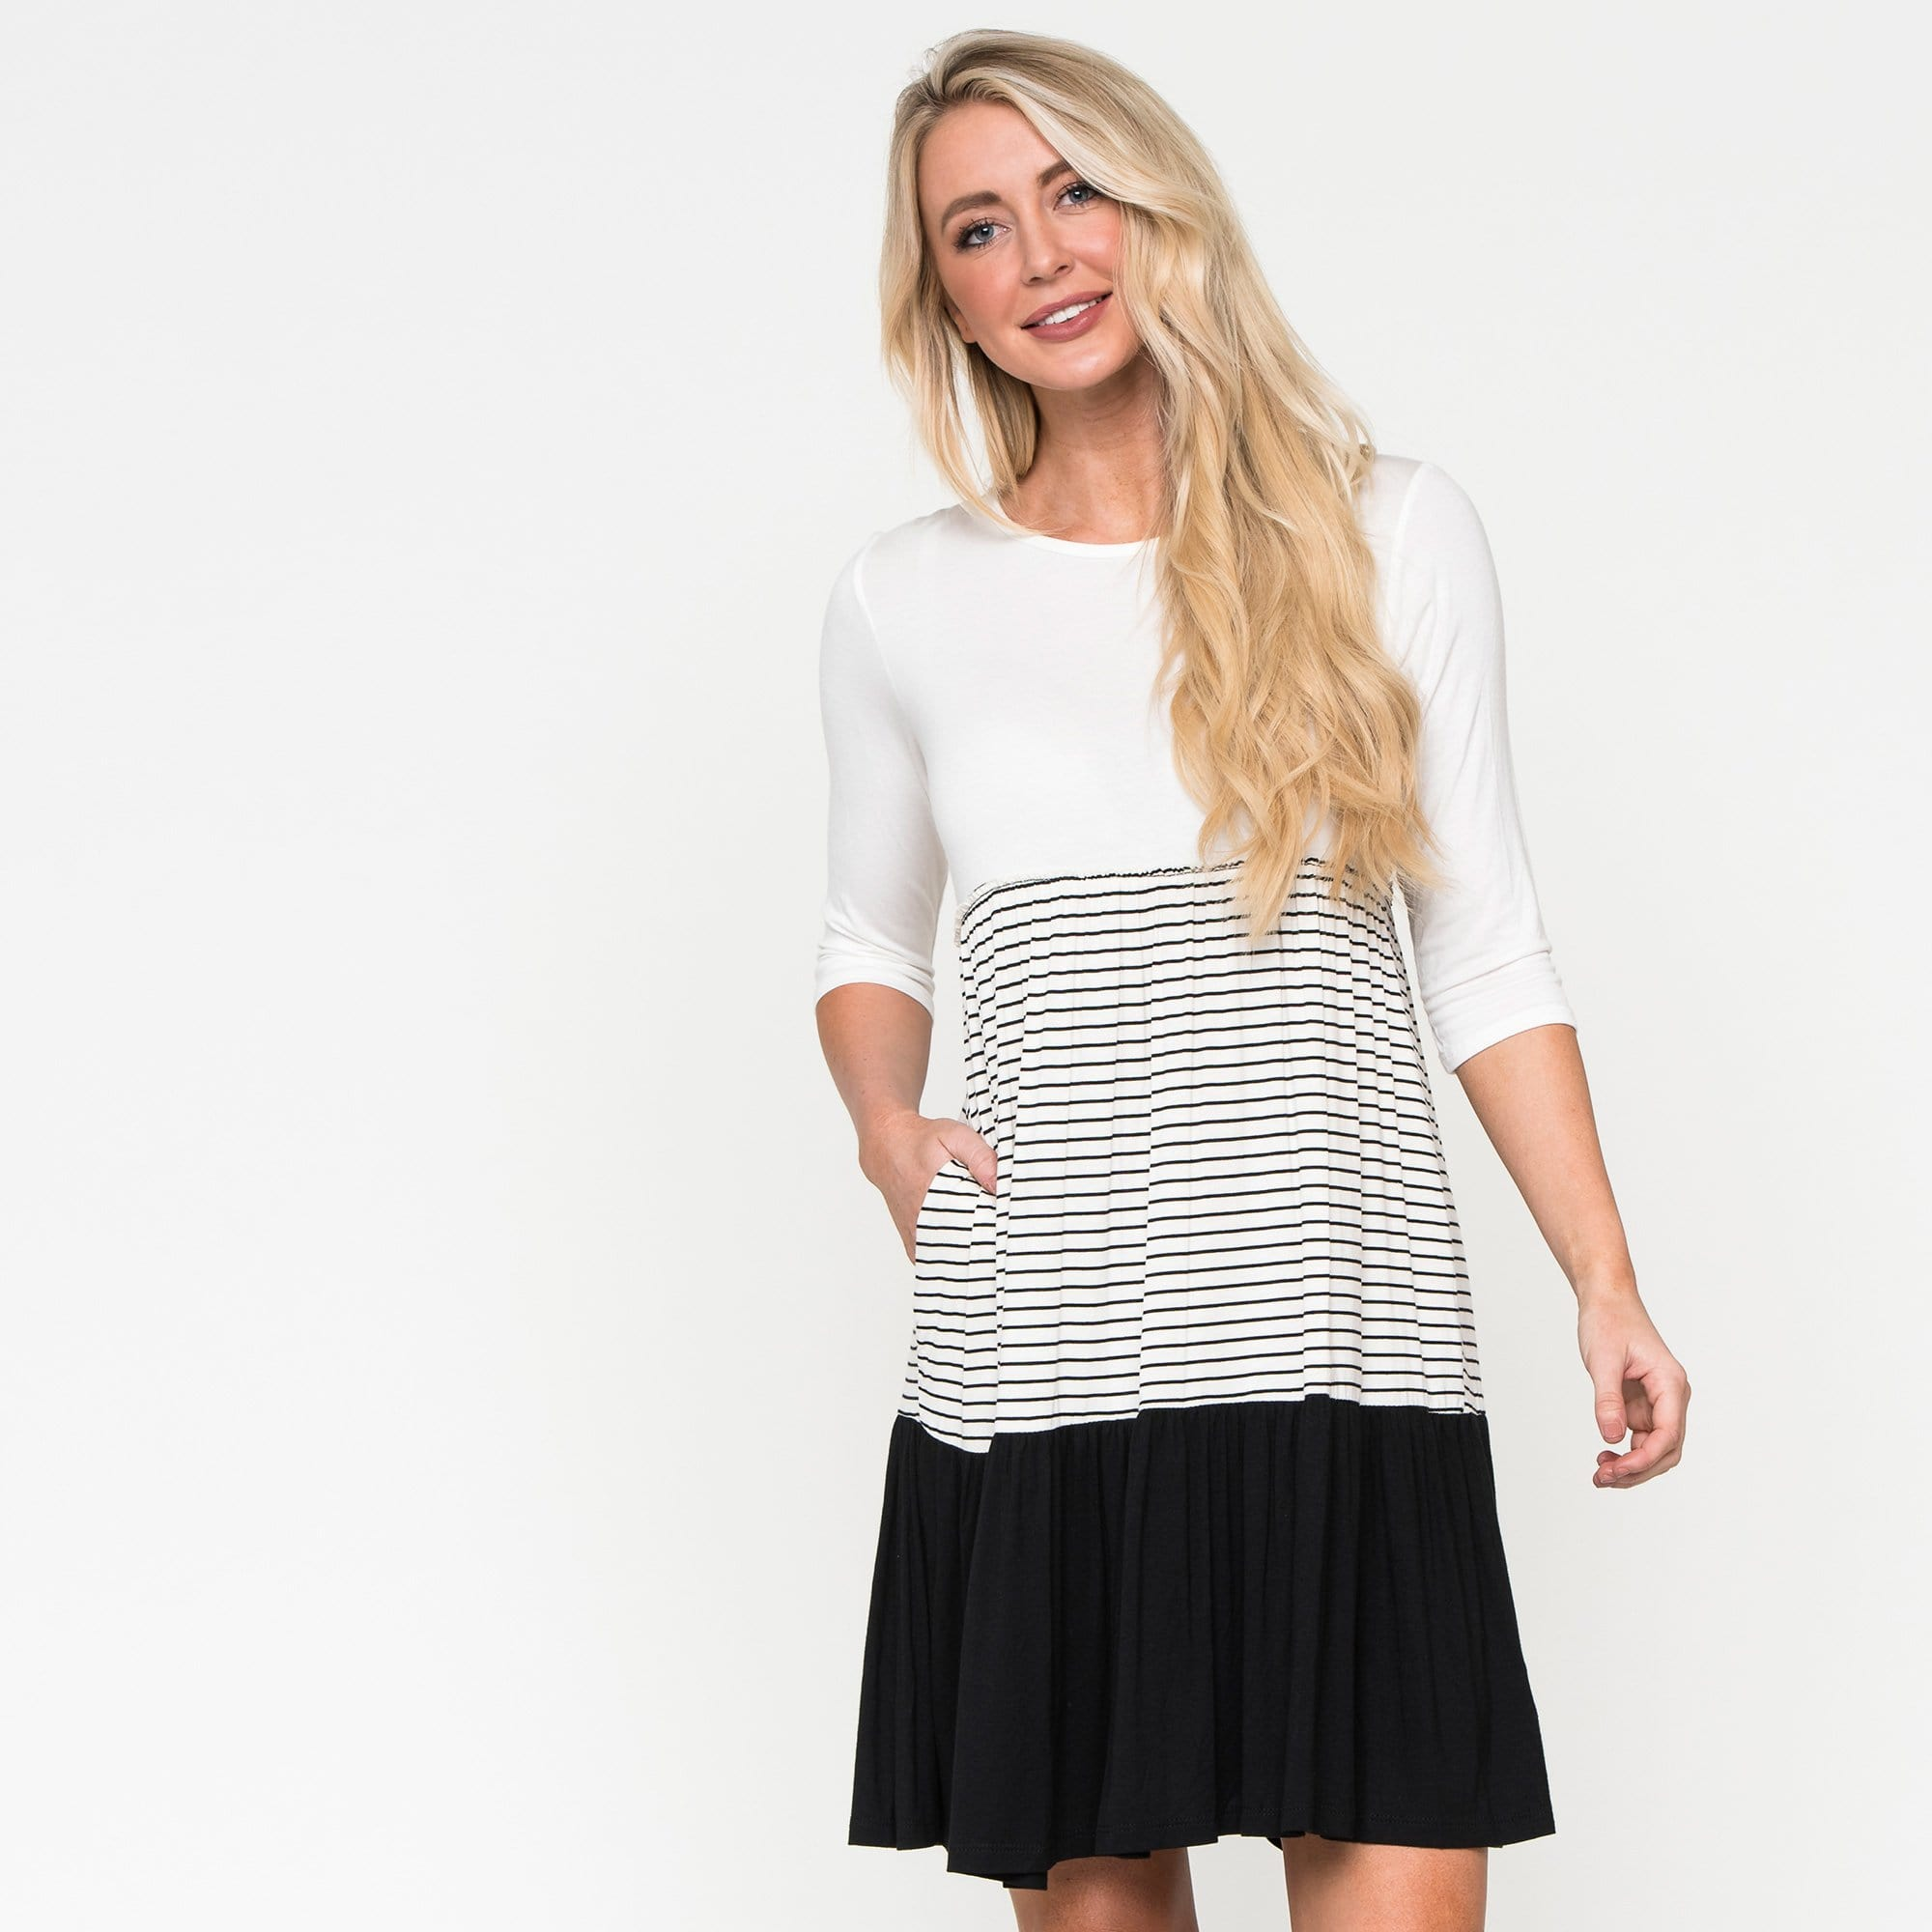 Lovely in Layers Dress